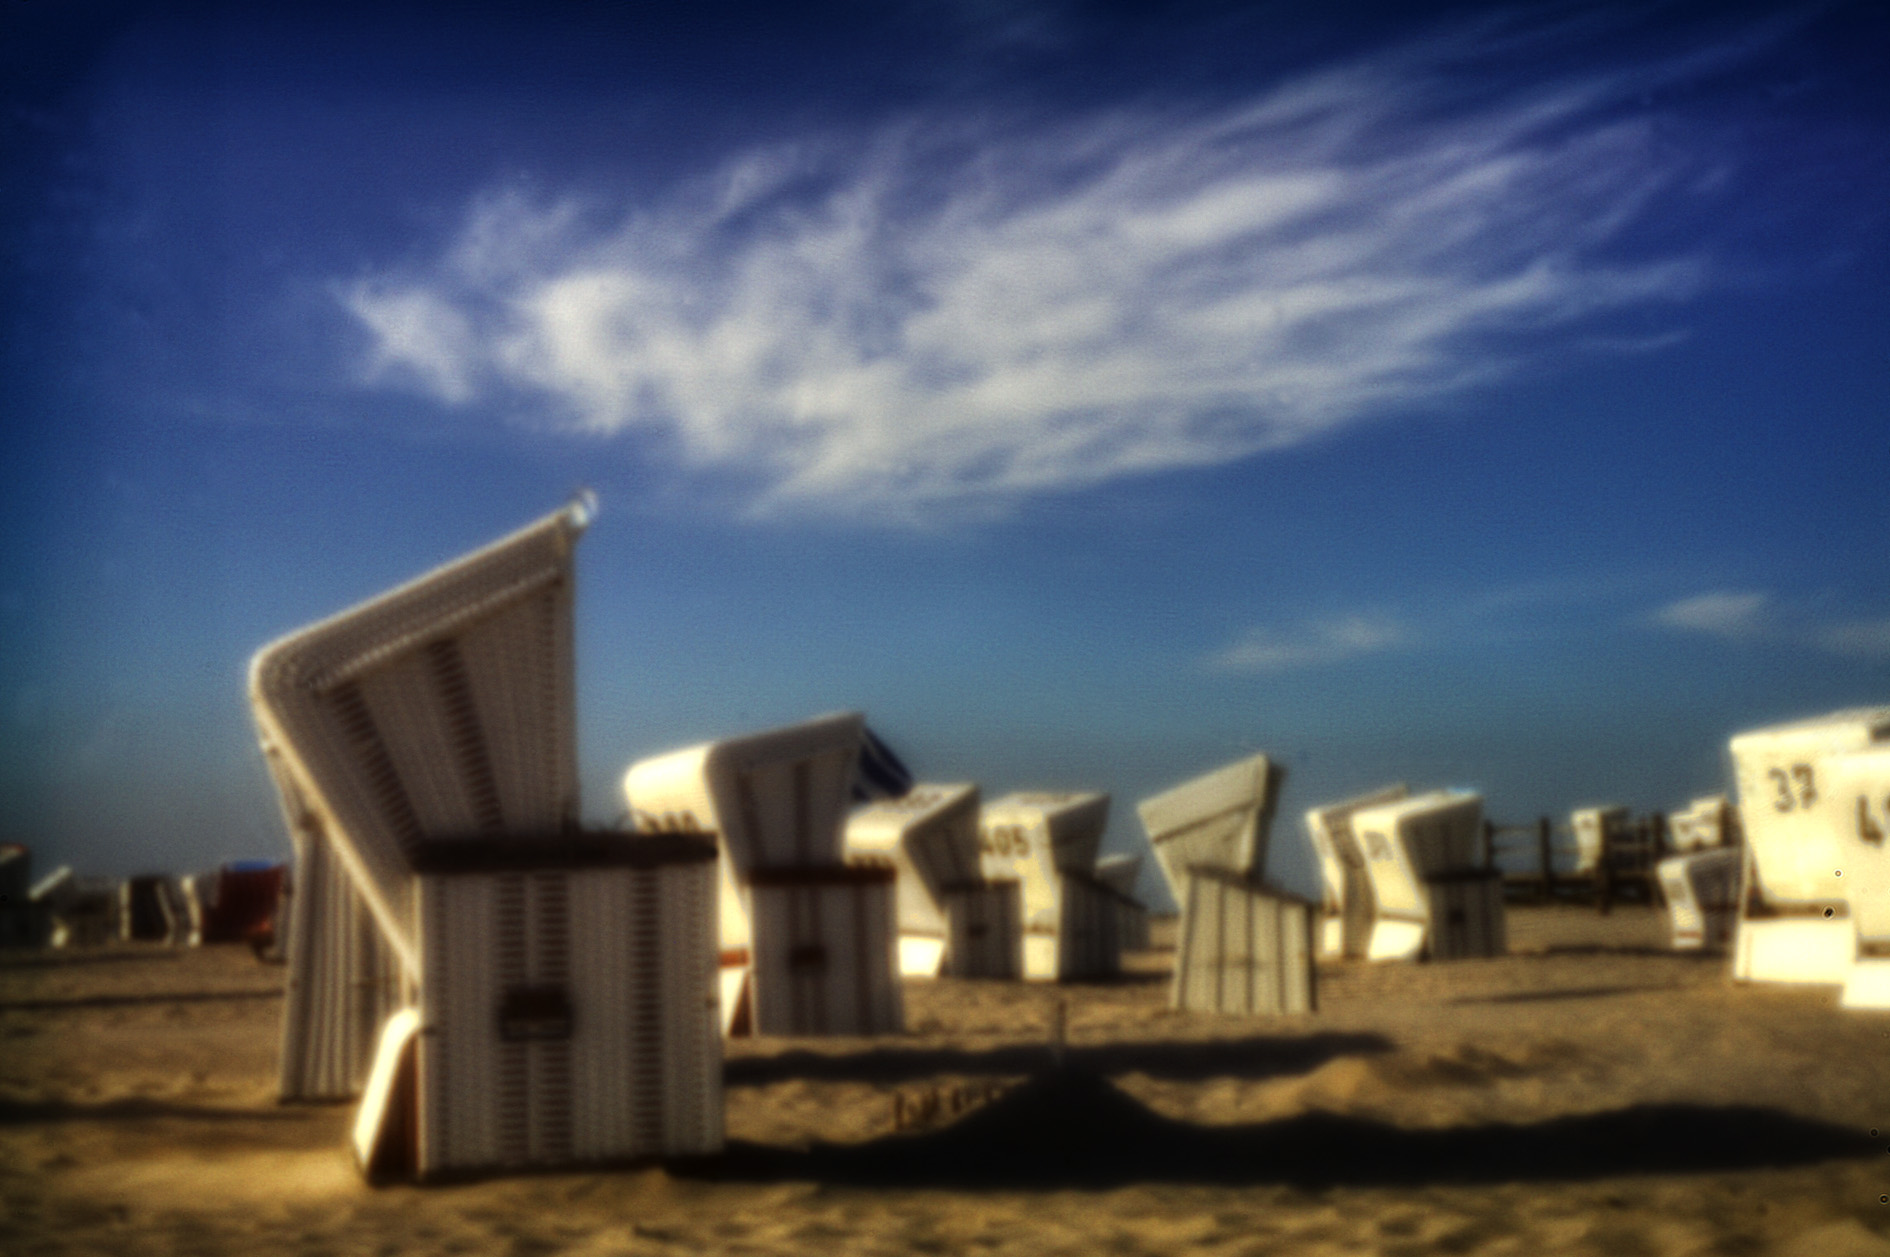 Strandkörbe (Beach Chairs) in St. Peter Ording